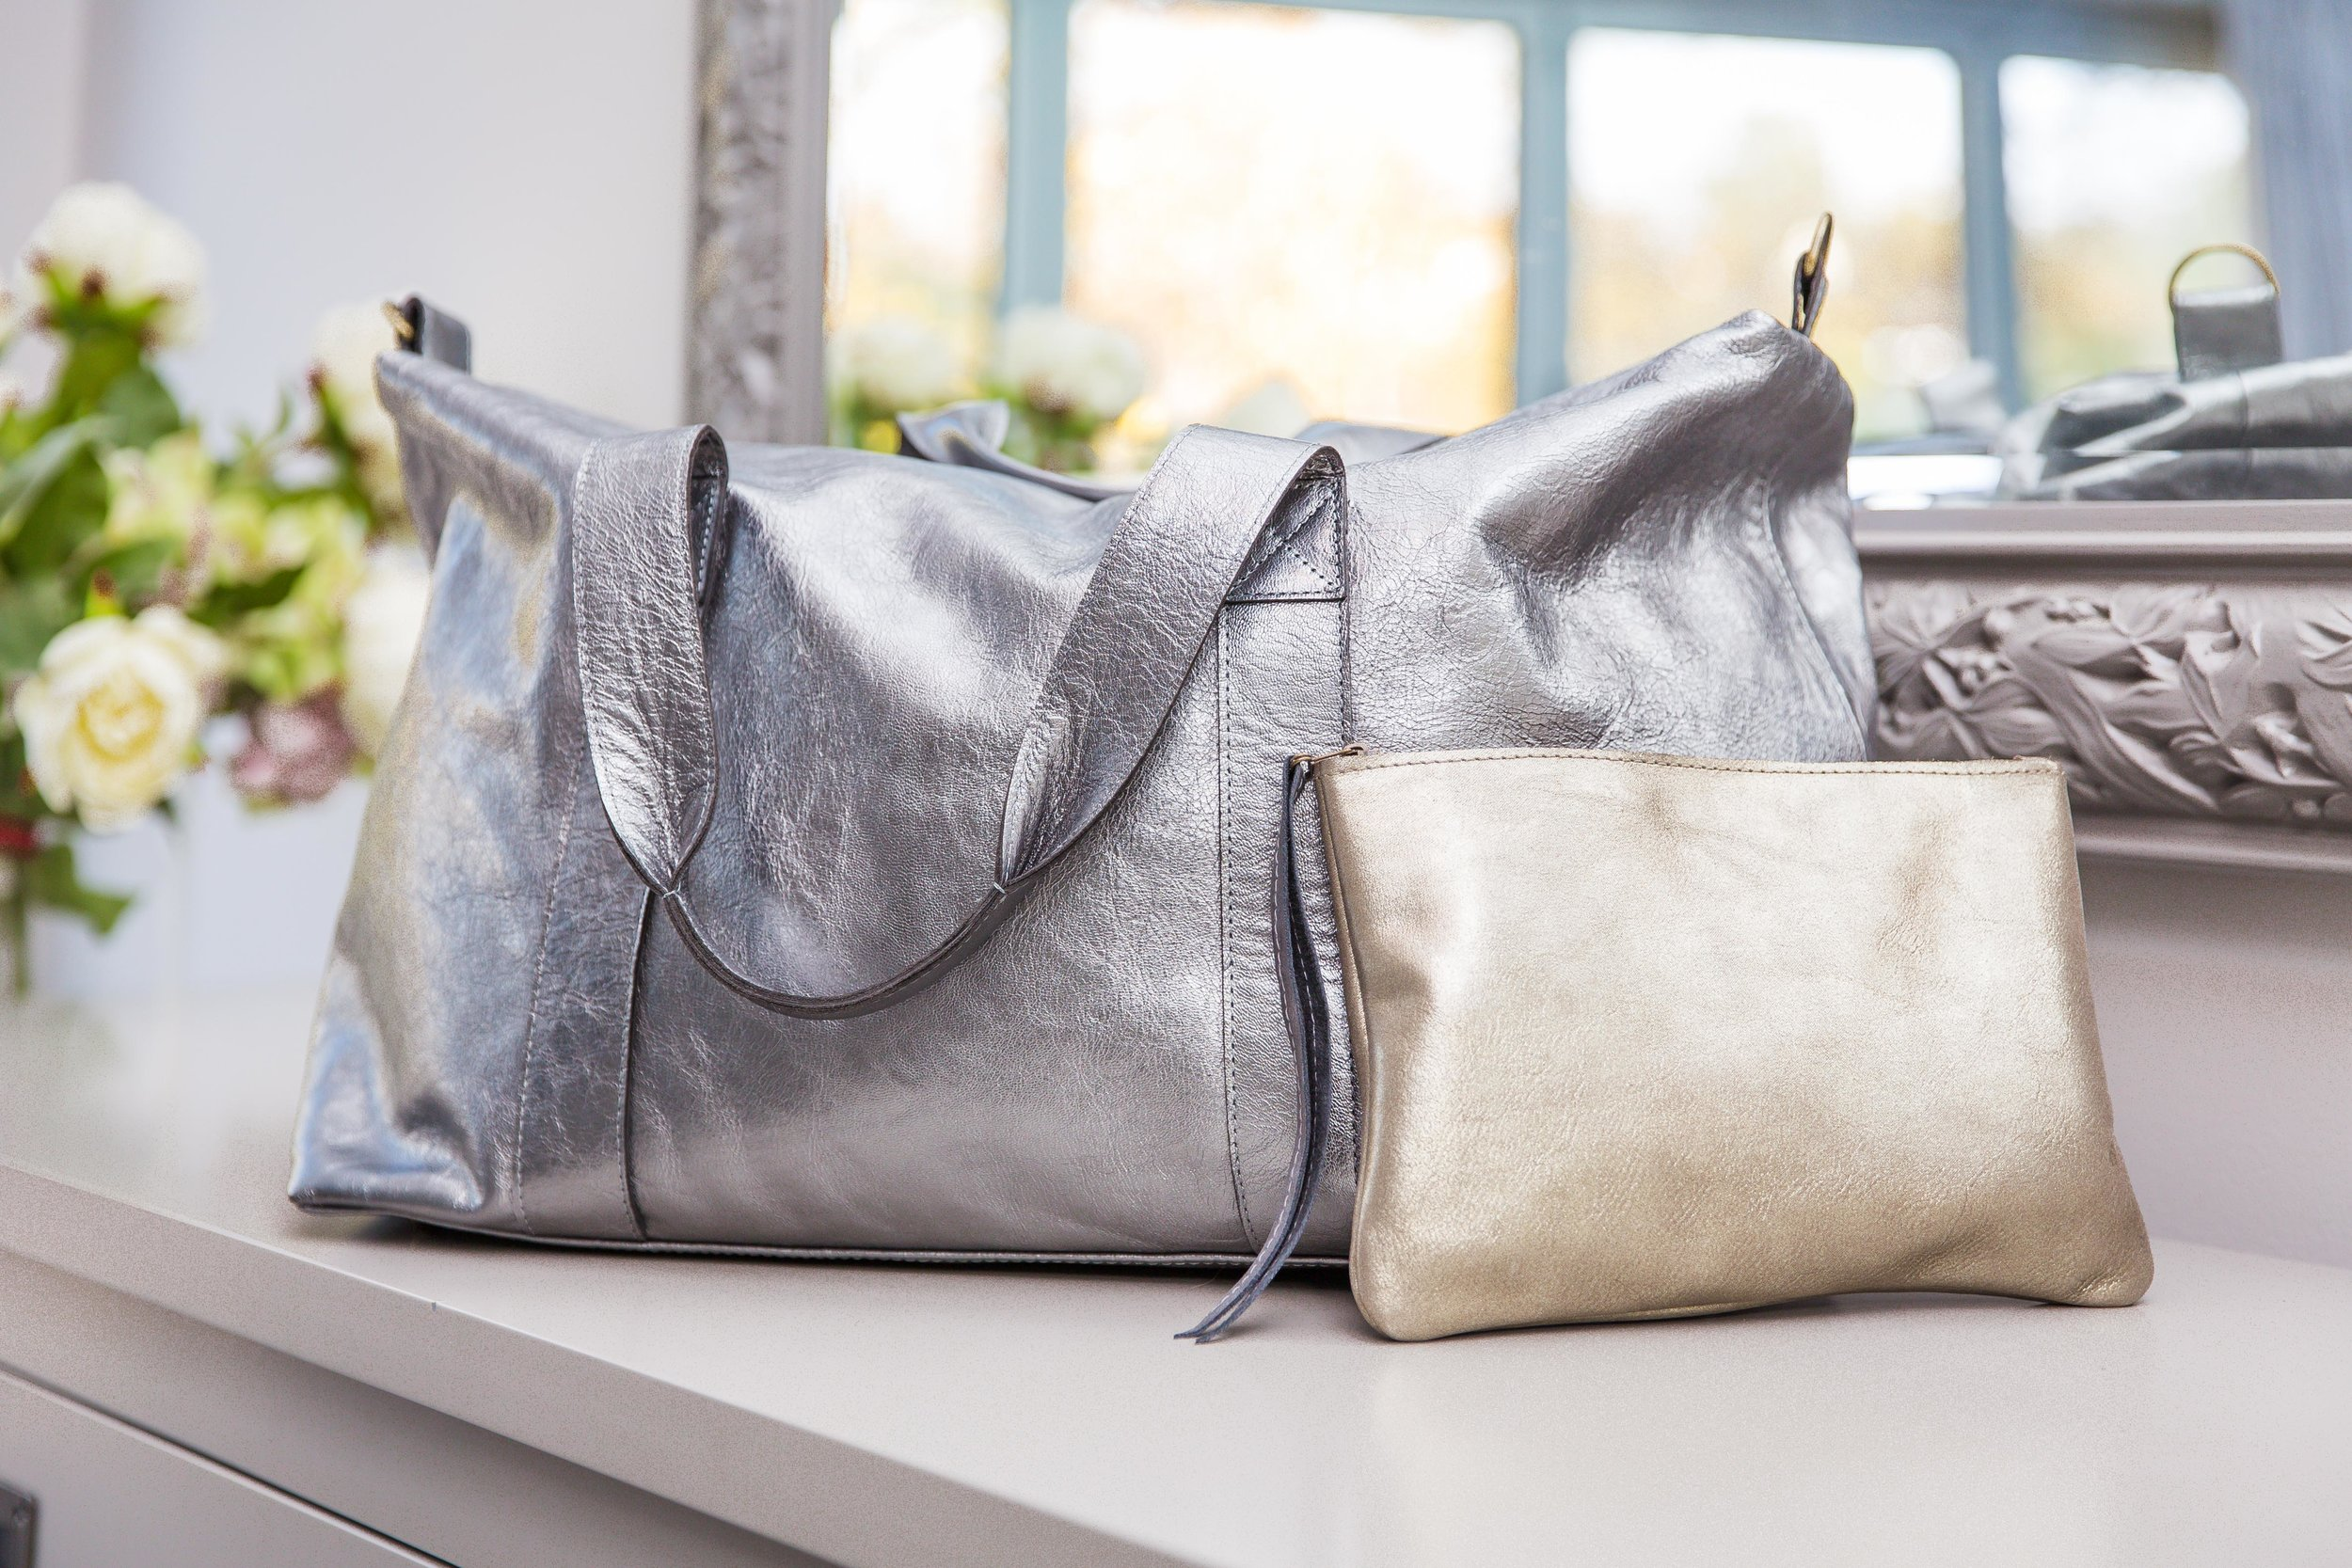 shop lifestyle and accessories -